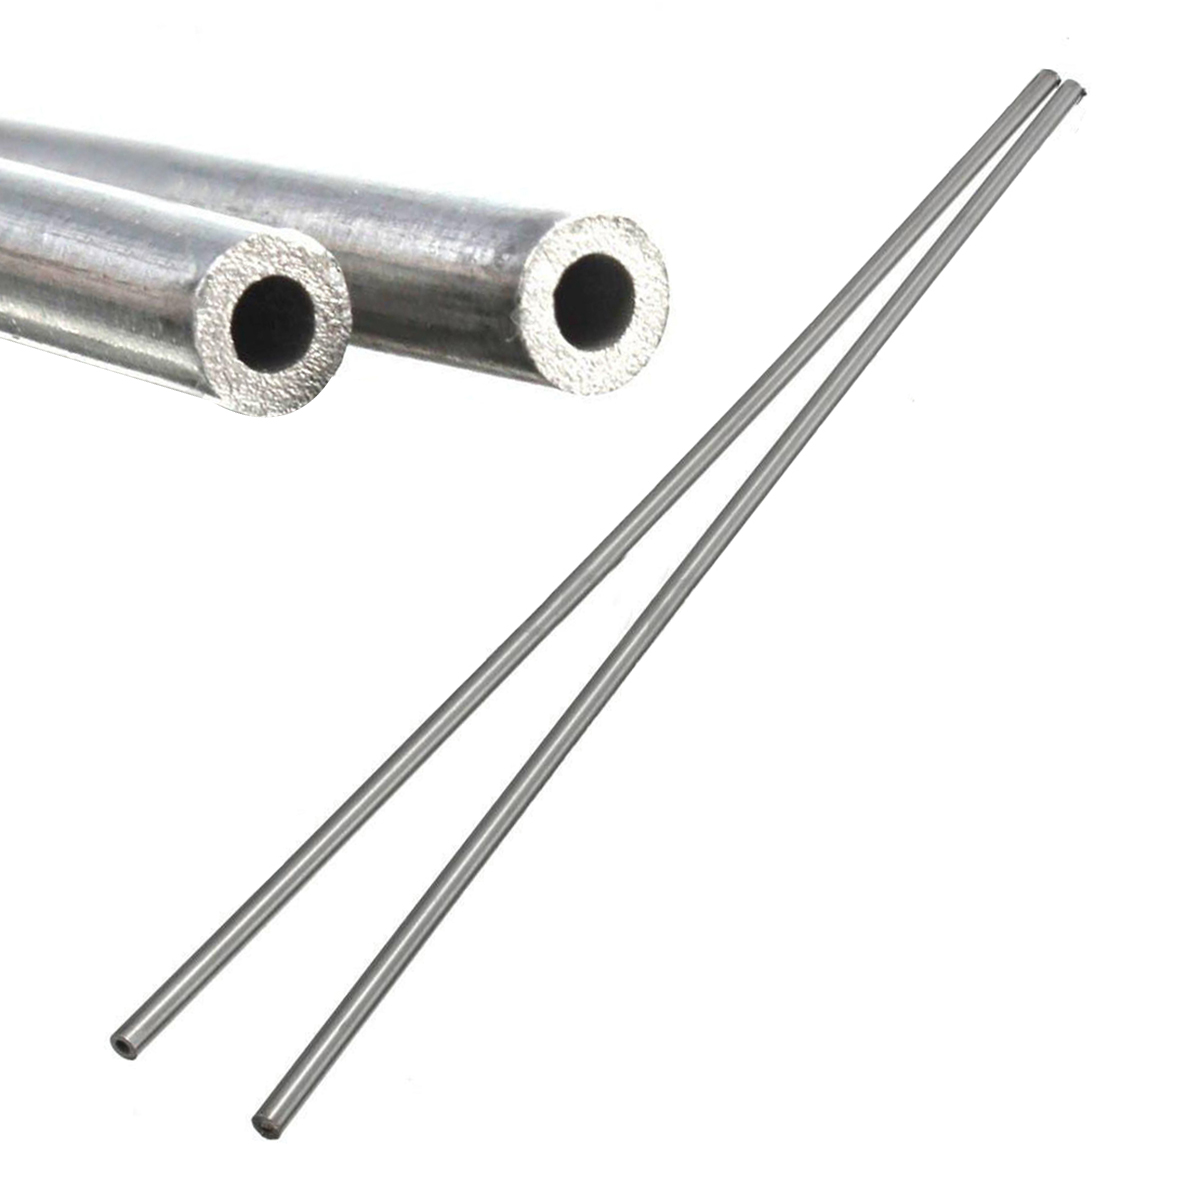 2pcs 304 Stainless Steel Capillary Tube Silver 4mm OD 3mm ID 250mm Length Use For Chemical Industry